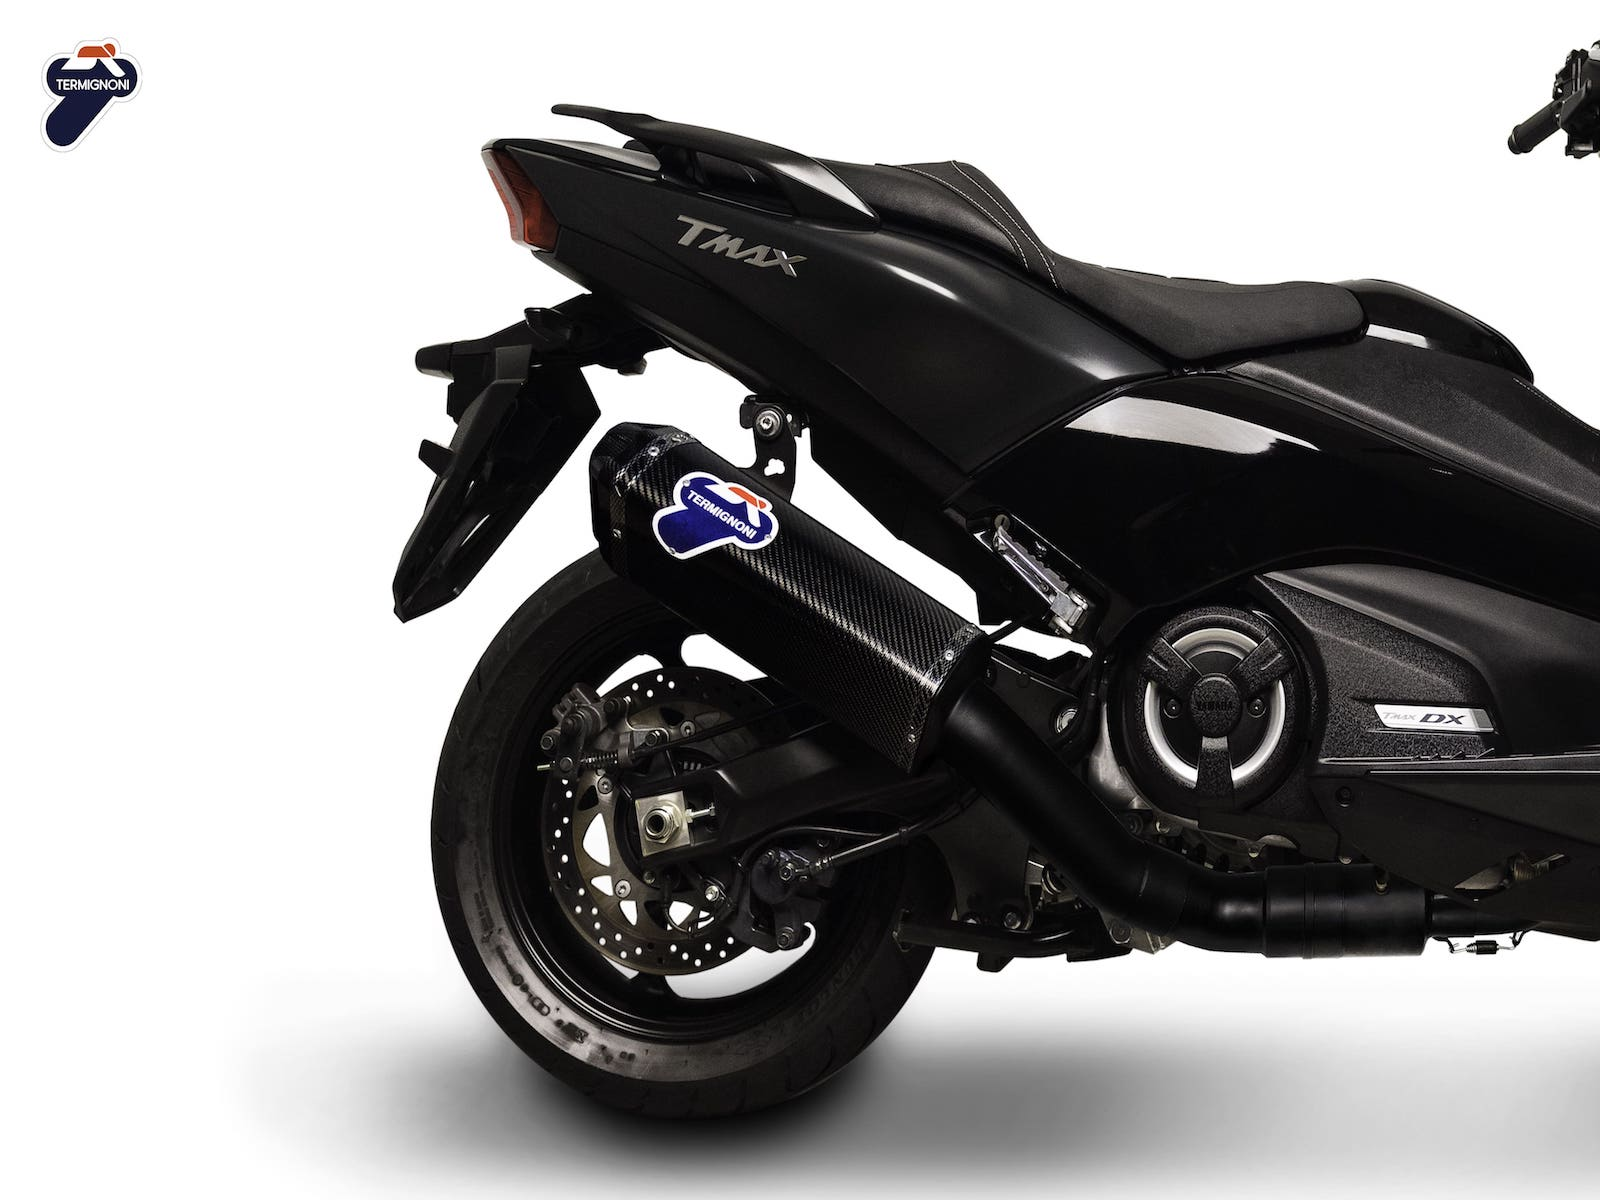 Termignoni total black edition complete exhaust system for Yamaha exhaust systems